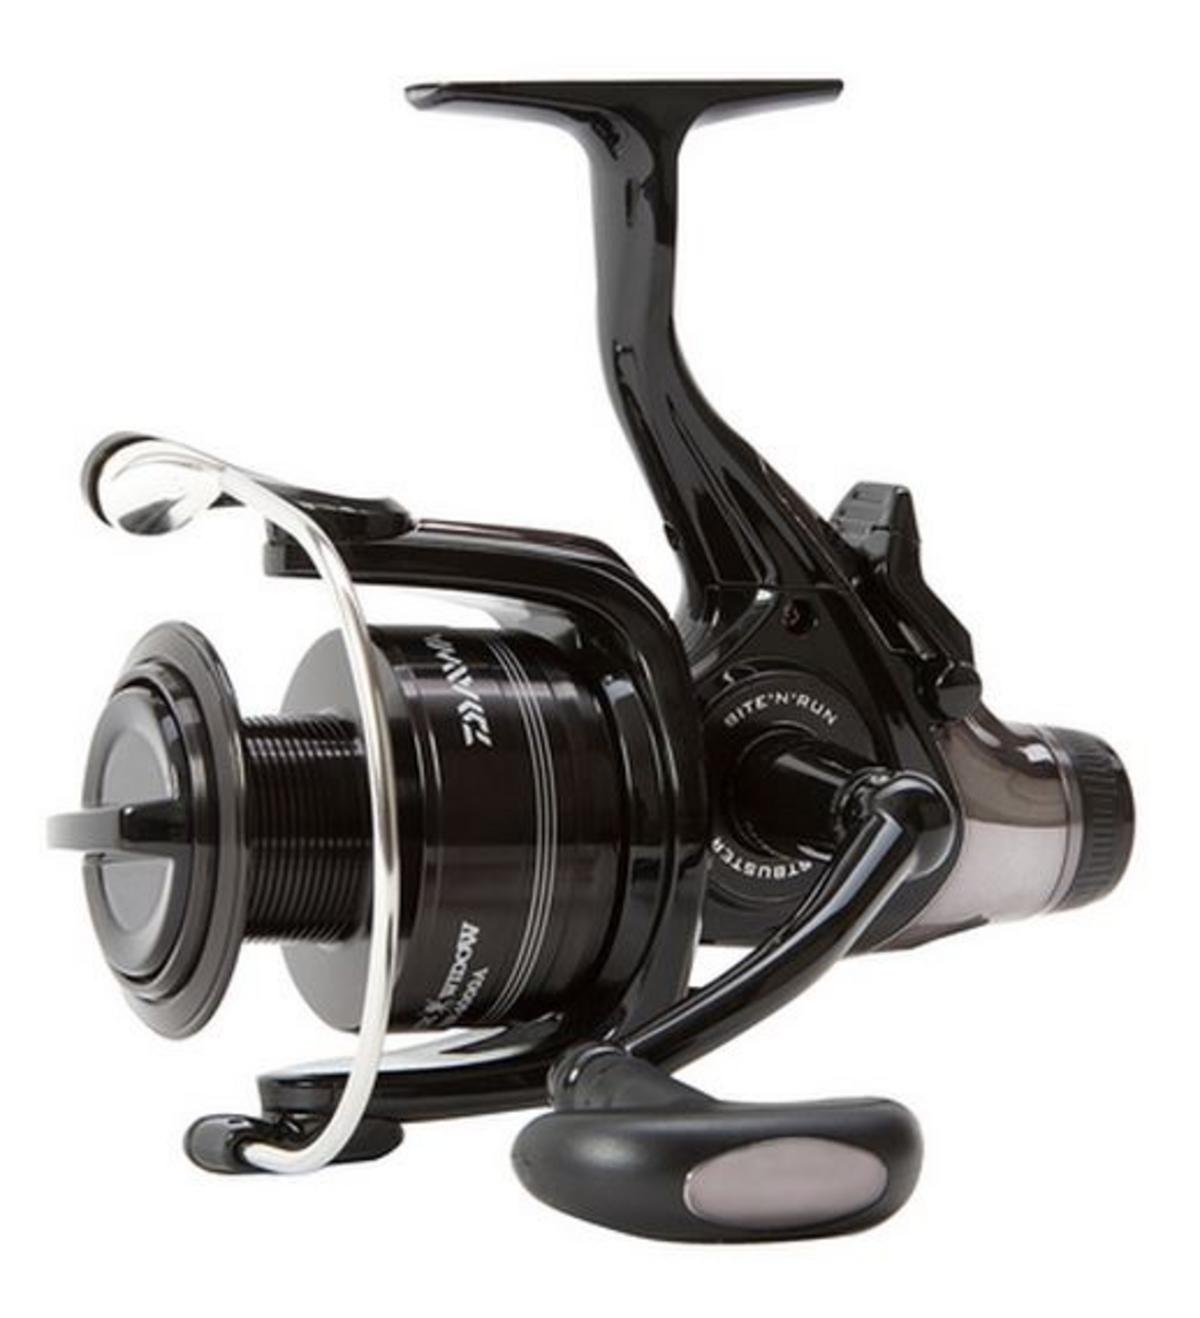 NEW DAIWA BLACK WIDOW BR BITE N RUN FISHING REEL ALL MODELS AVAILABLE